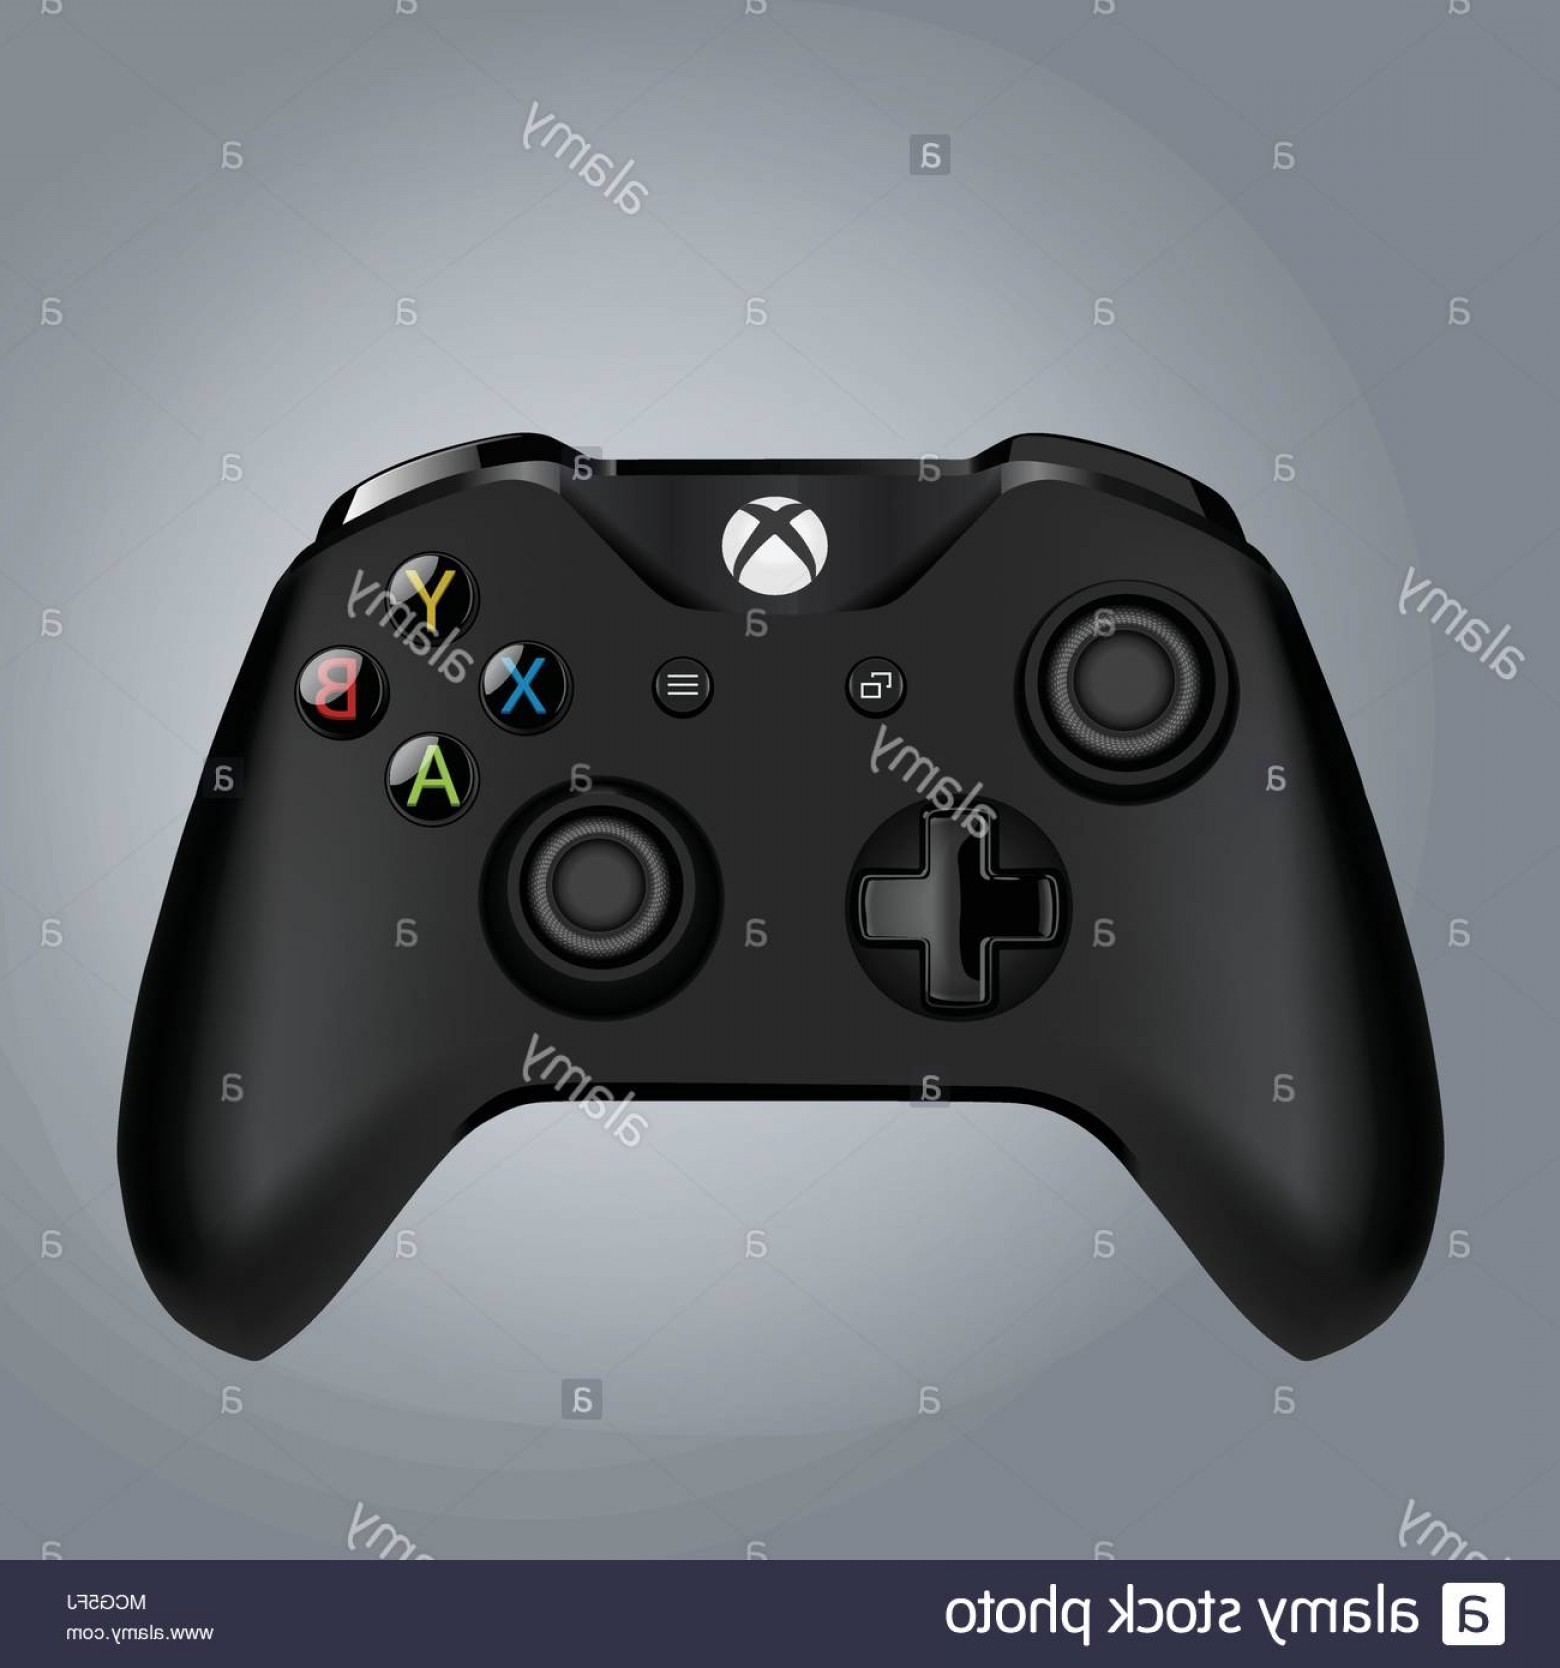 Xbox Game Controller Vector: Tehran Province Iran February Computer Game Controller Vector Illustration Gaming Concept Image